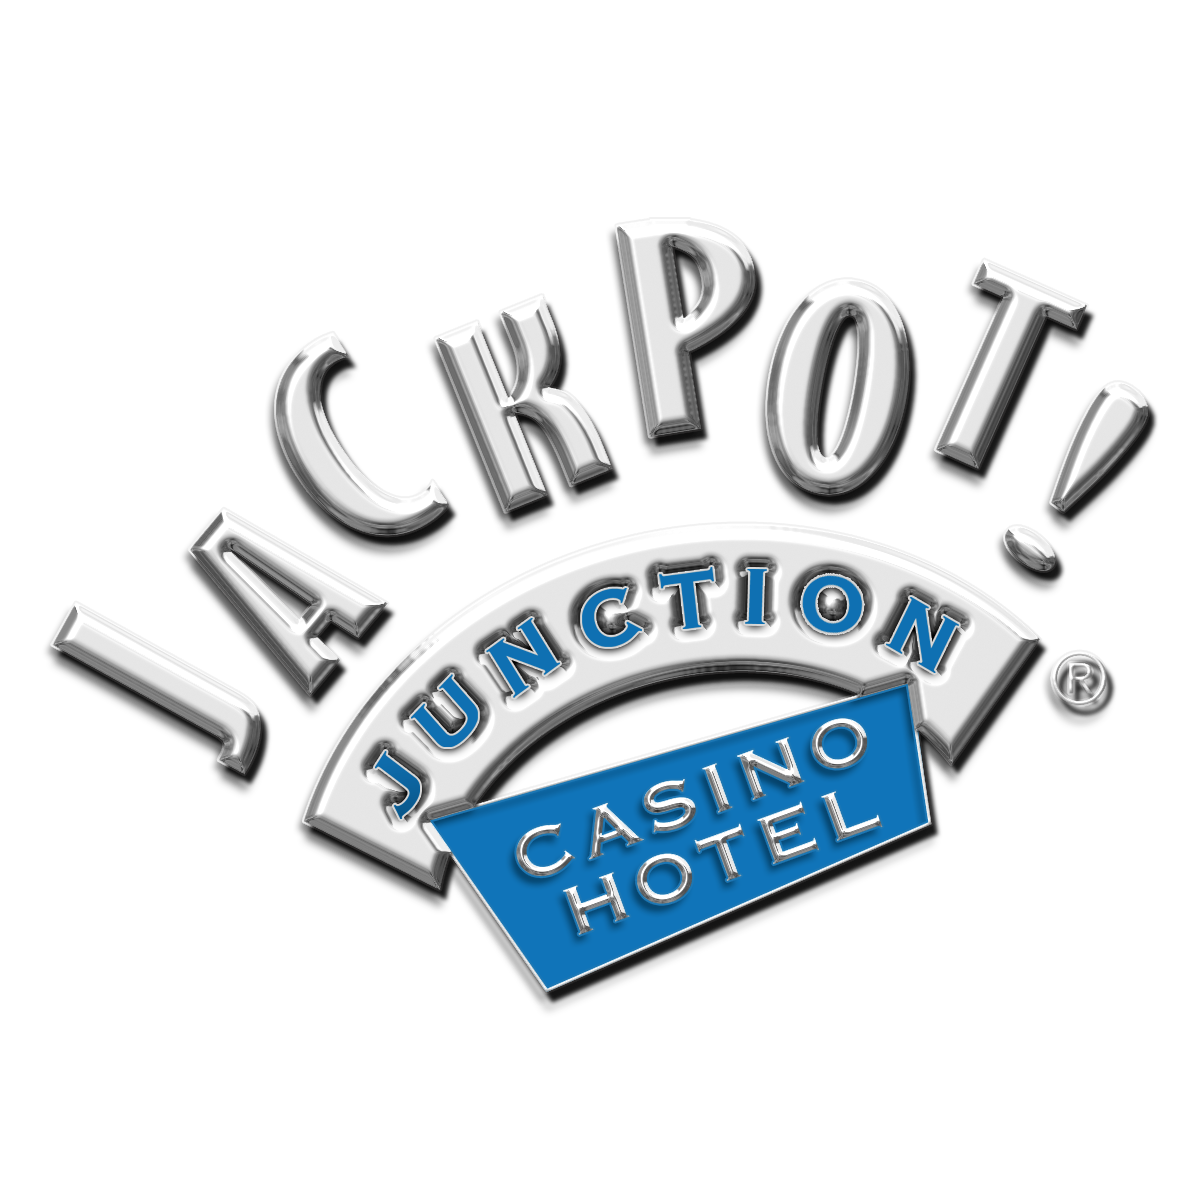 jackpot junction casino hotel 39375 county rd 24